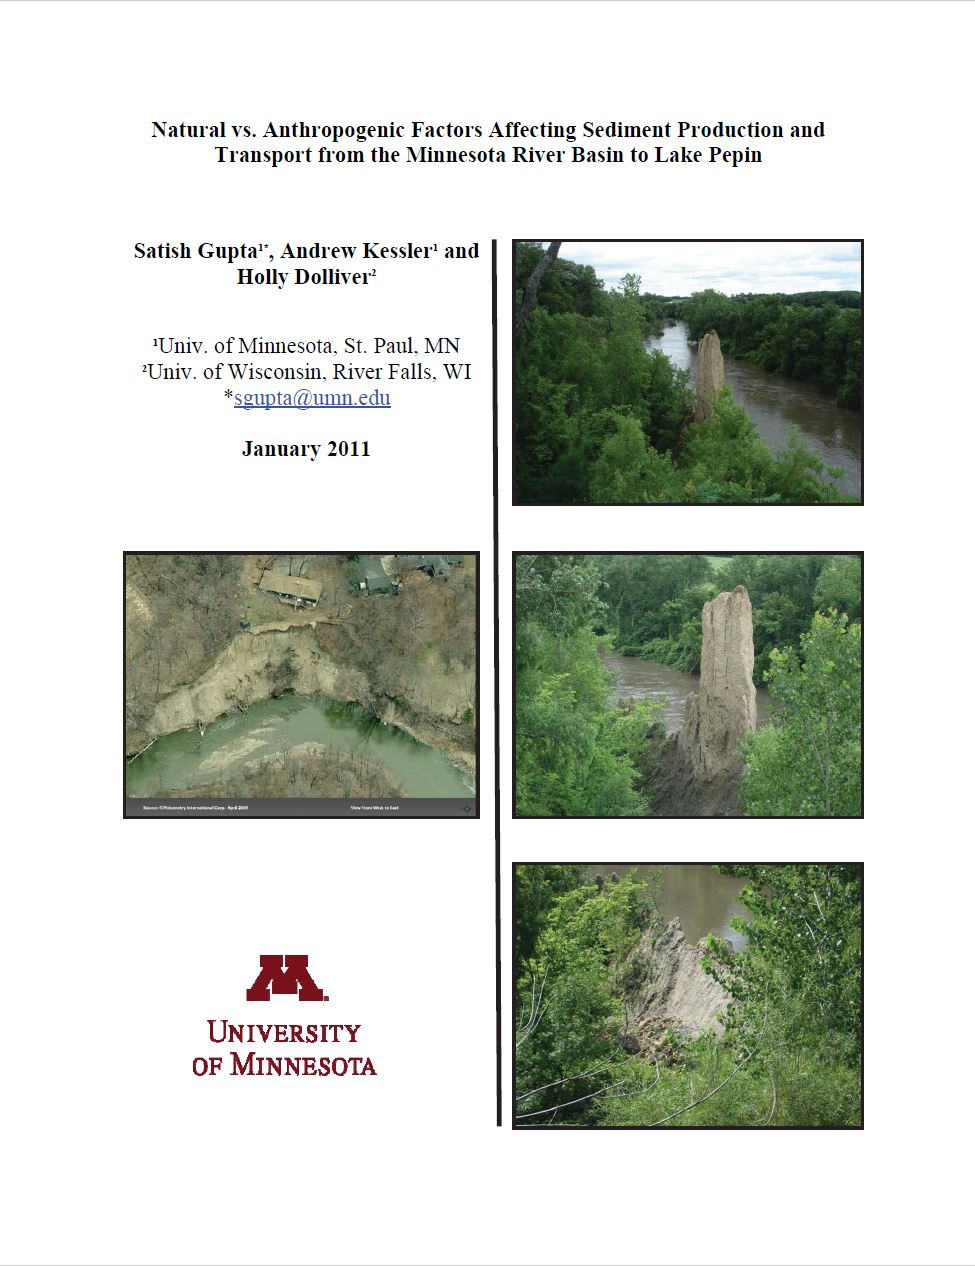 Natural vs. Anthropogenic Factors Affecting Sediment Production and Transport from the Minnesota River Basin to Lake Pepin